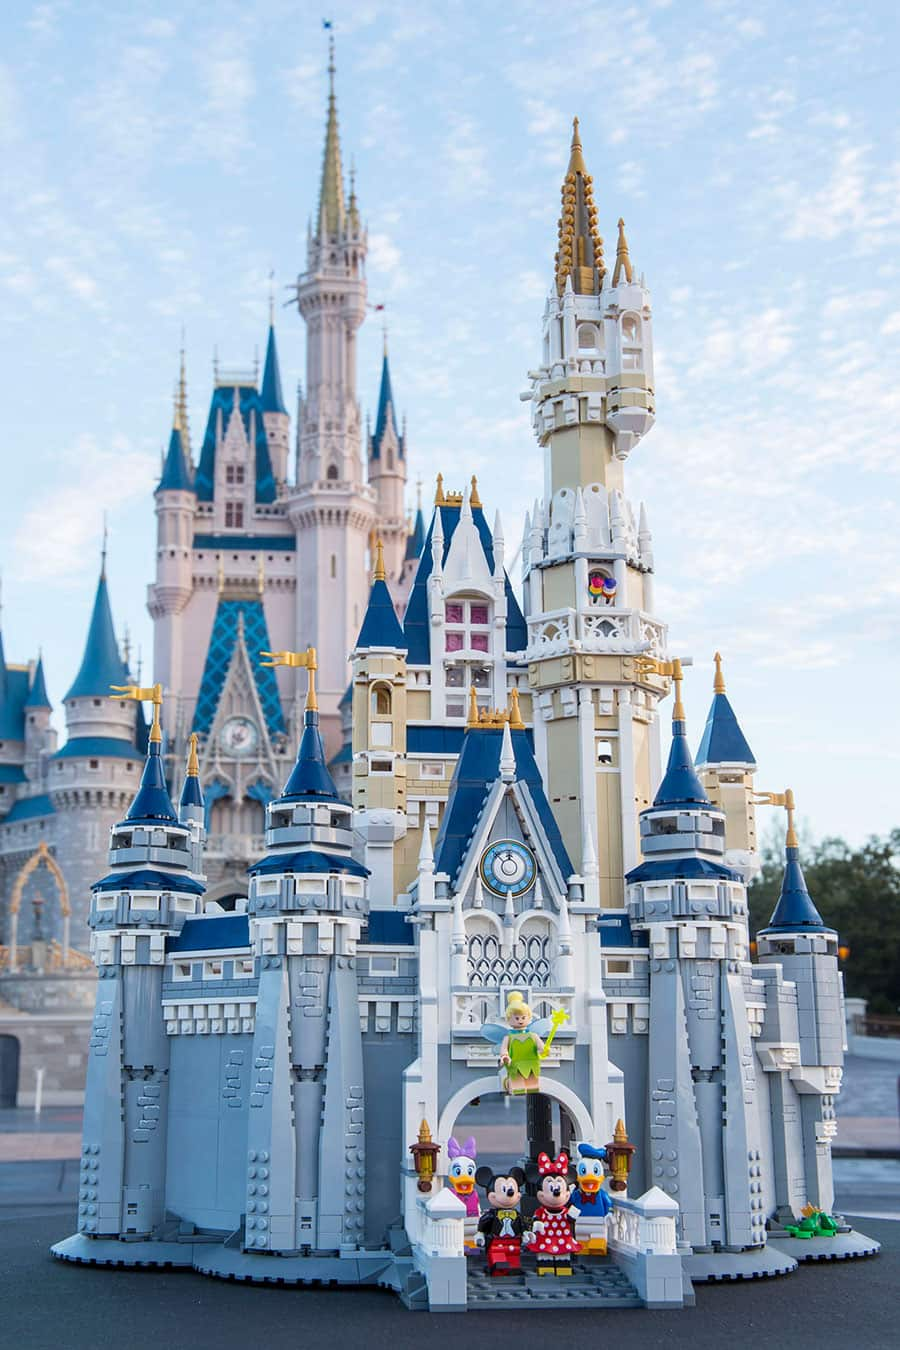 VIDEO - The Disney Castle by LEGO Now Available At Disney Parks